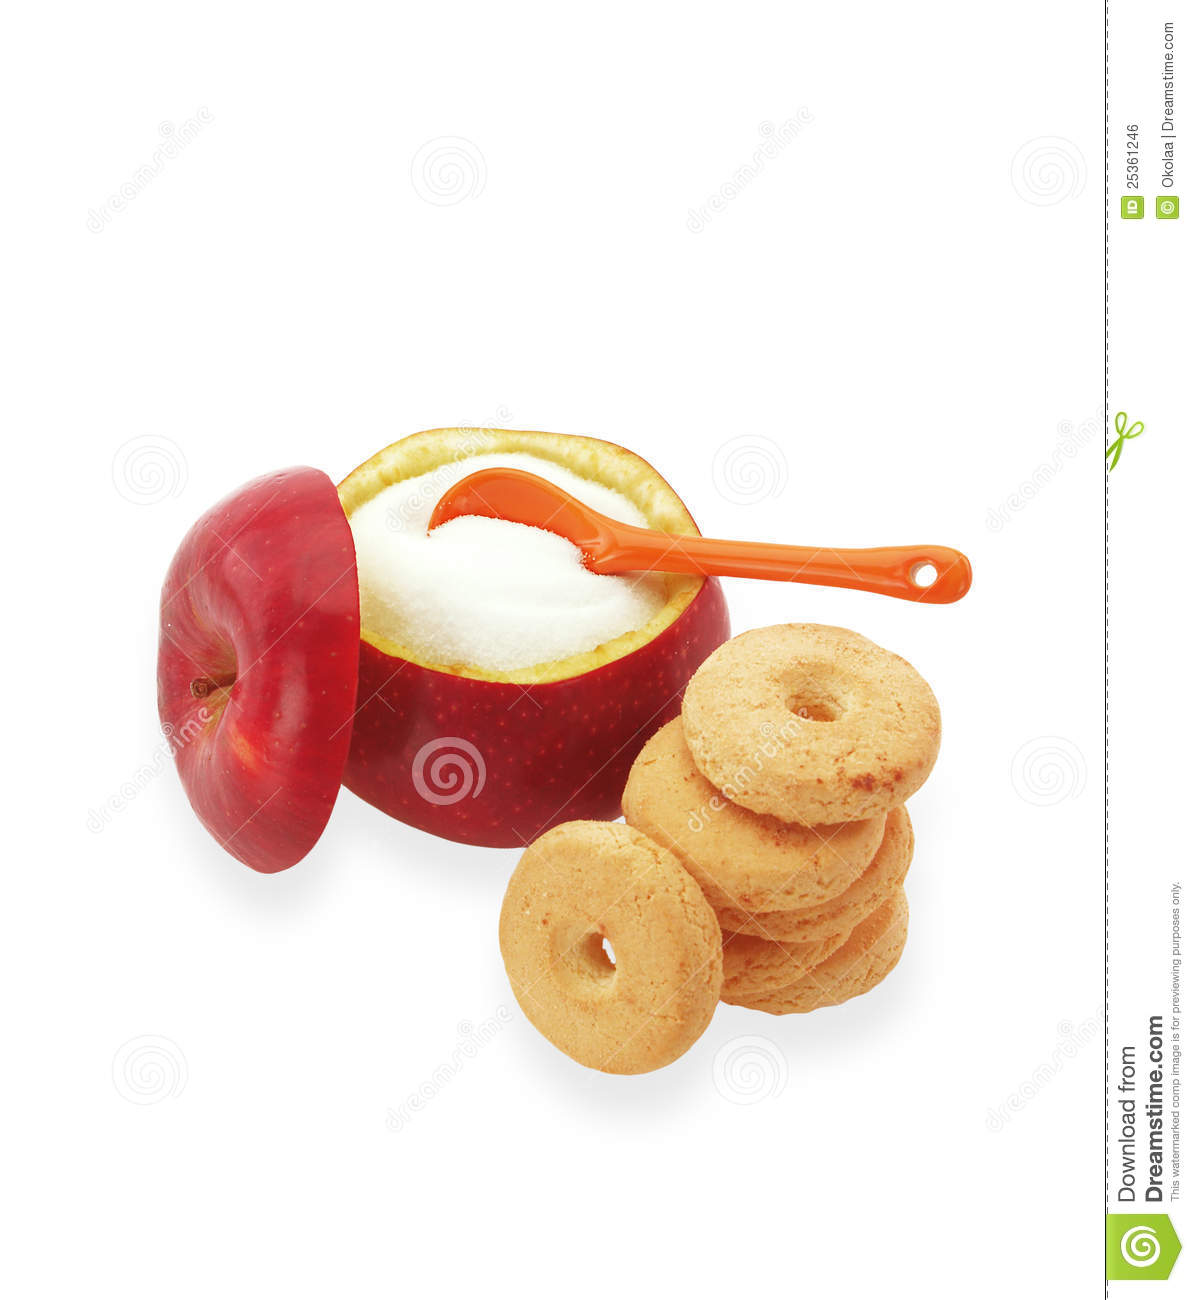 Diet Suggar Royalty Free Stock Image - Image: 25361246